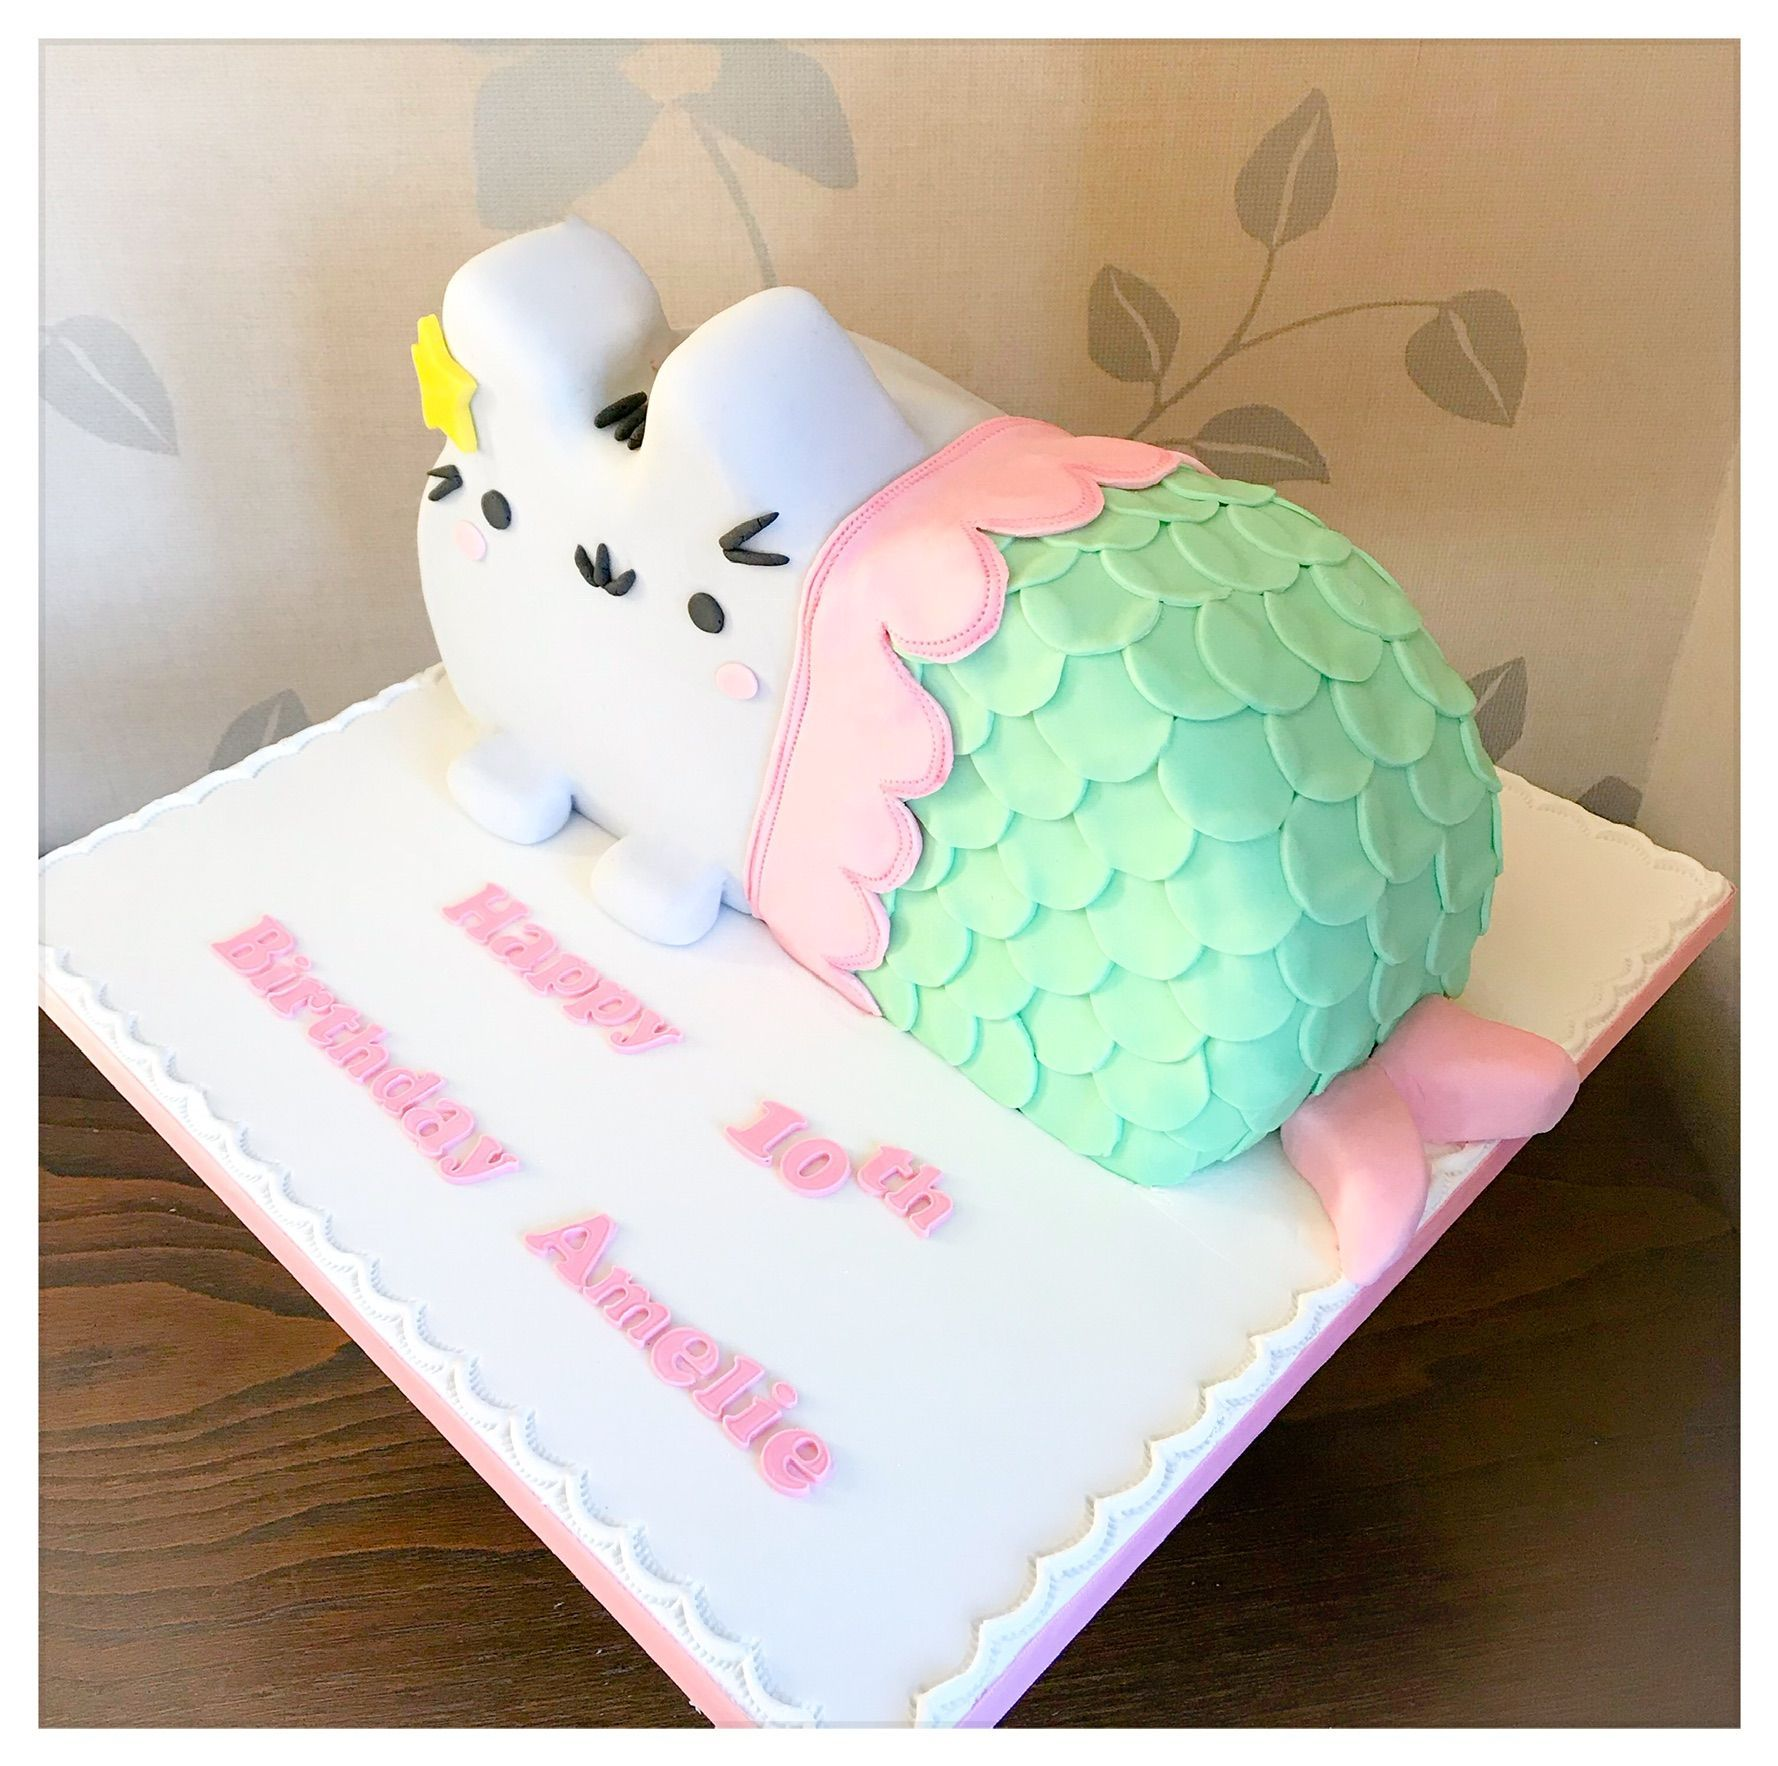 pusheen cat cake 1